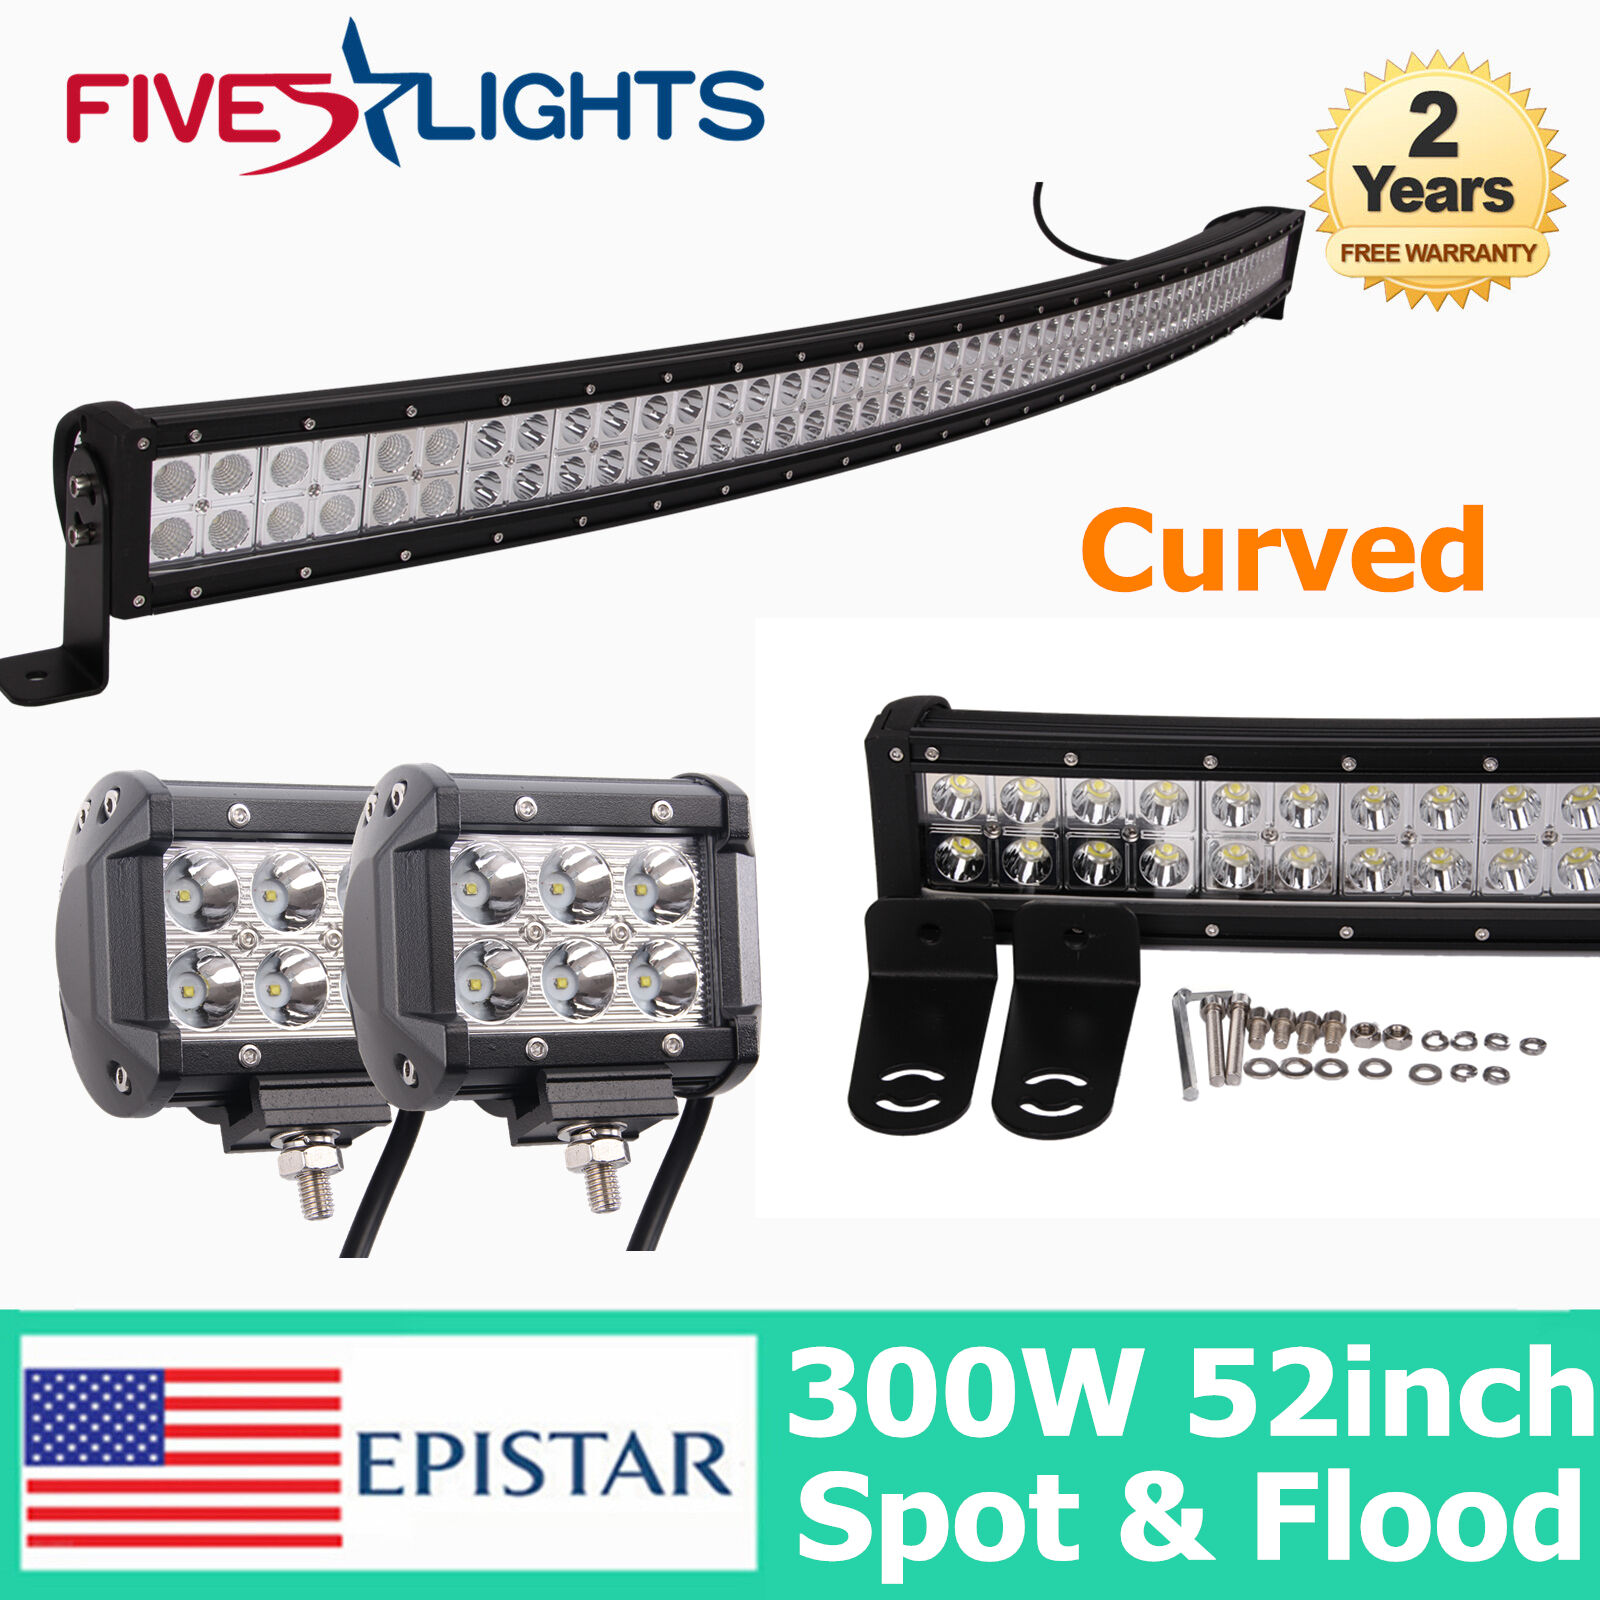 53 300w epistar led light bar curved driving combo offroad 4wd jeep picture 1 of 11 aloadofball Image collections